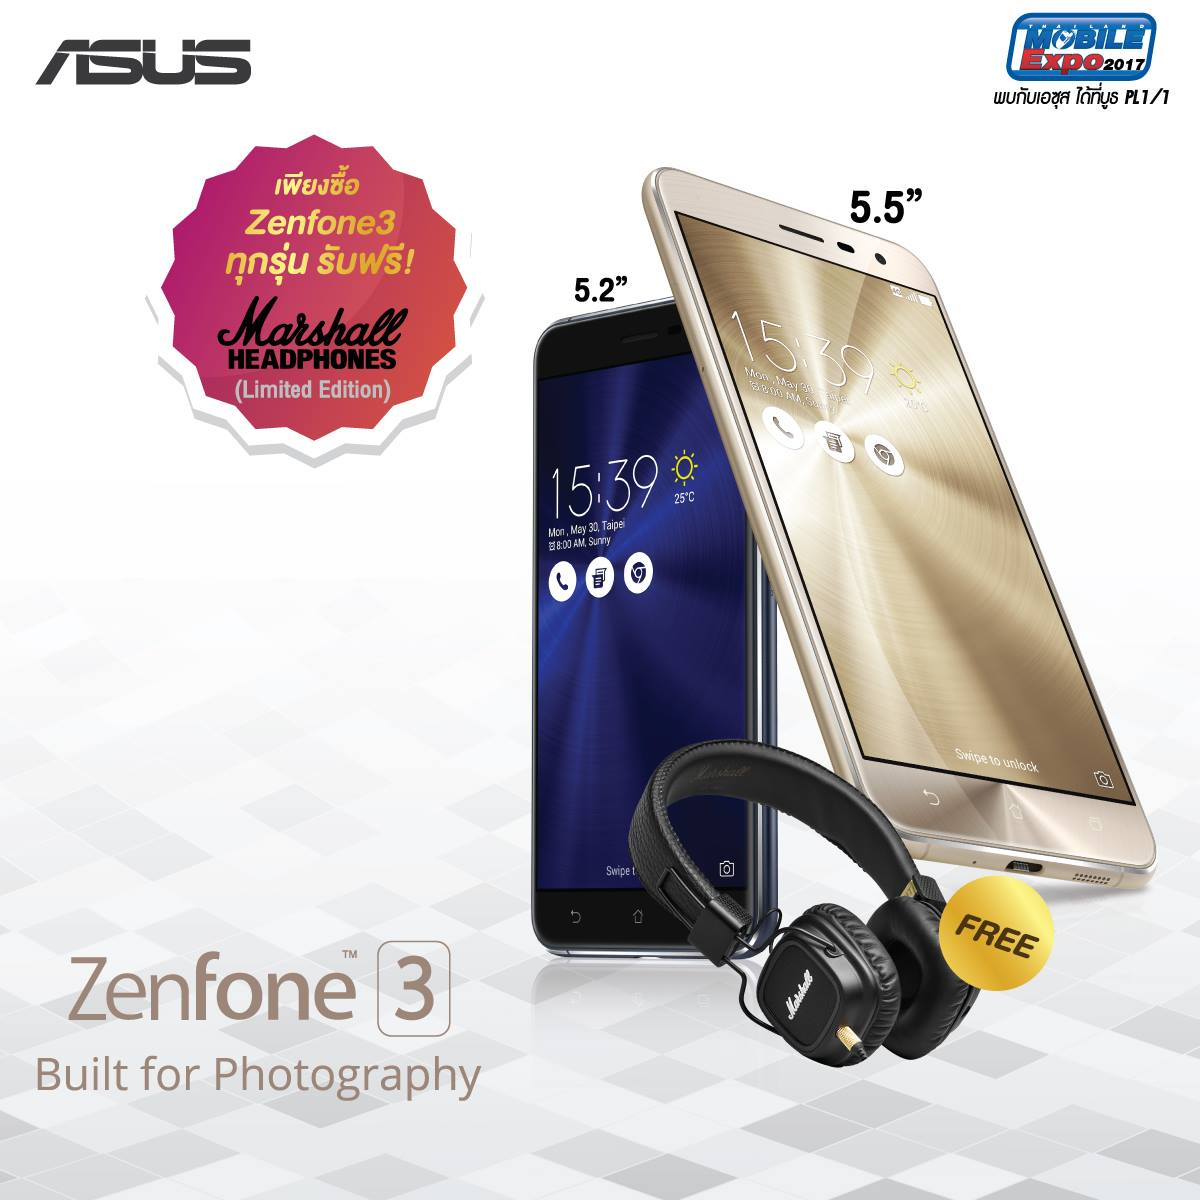 promotion-asus-mobile-expo-2017-001